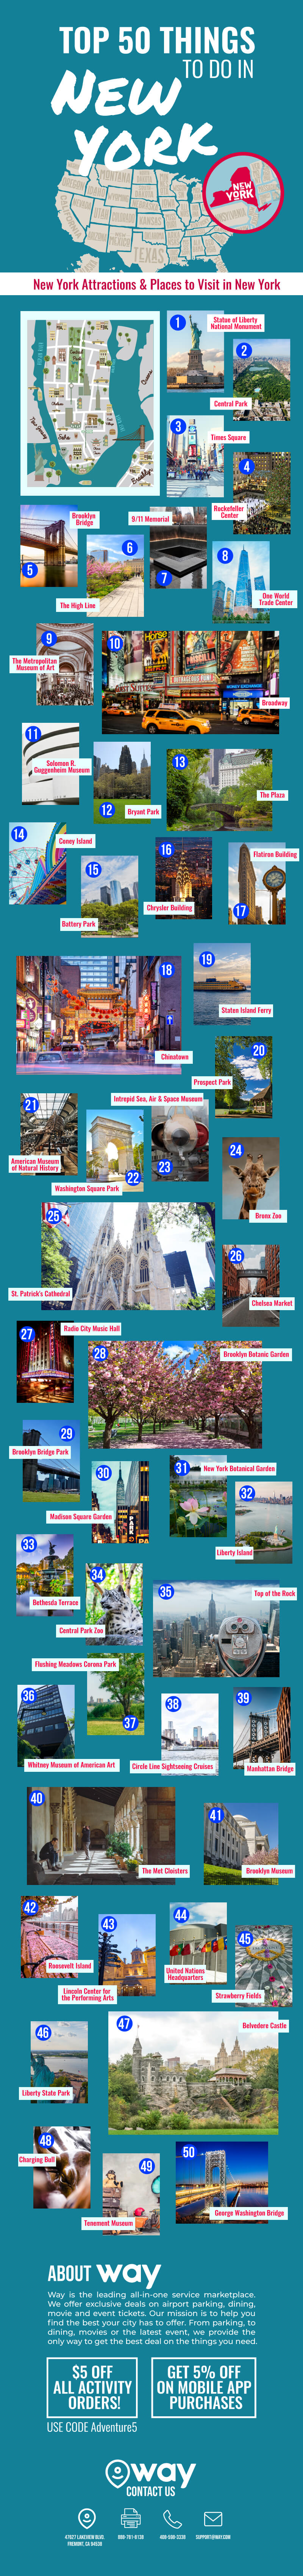 Top 50 Things to Do in New York